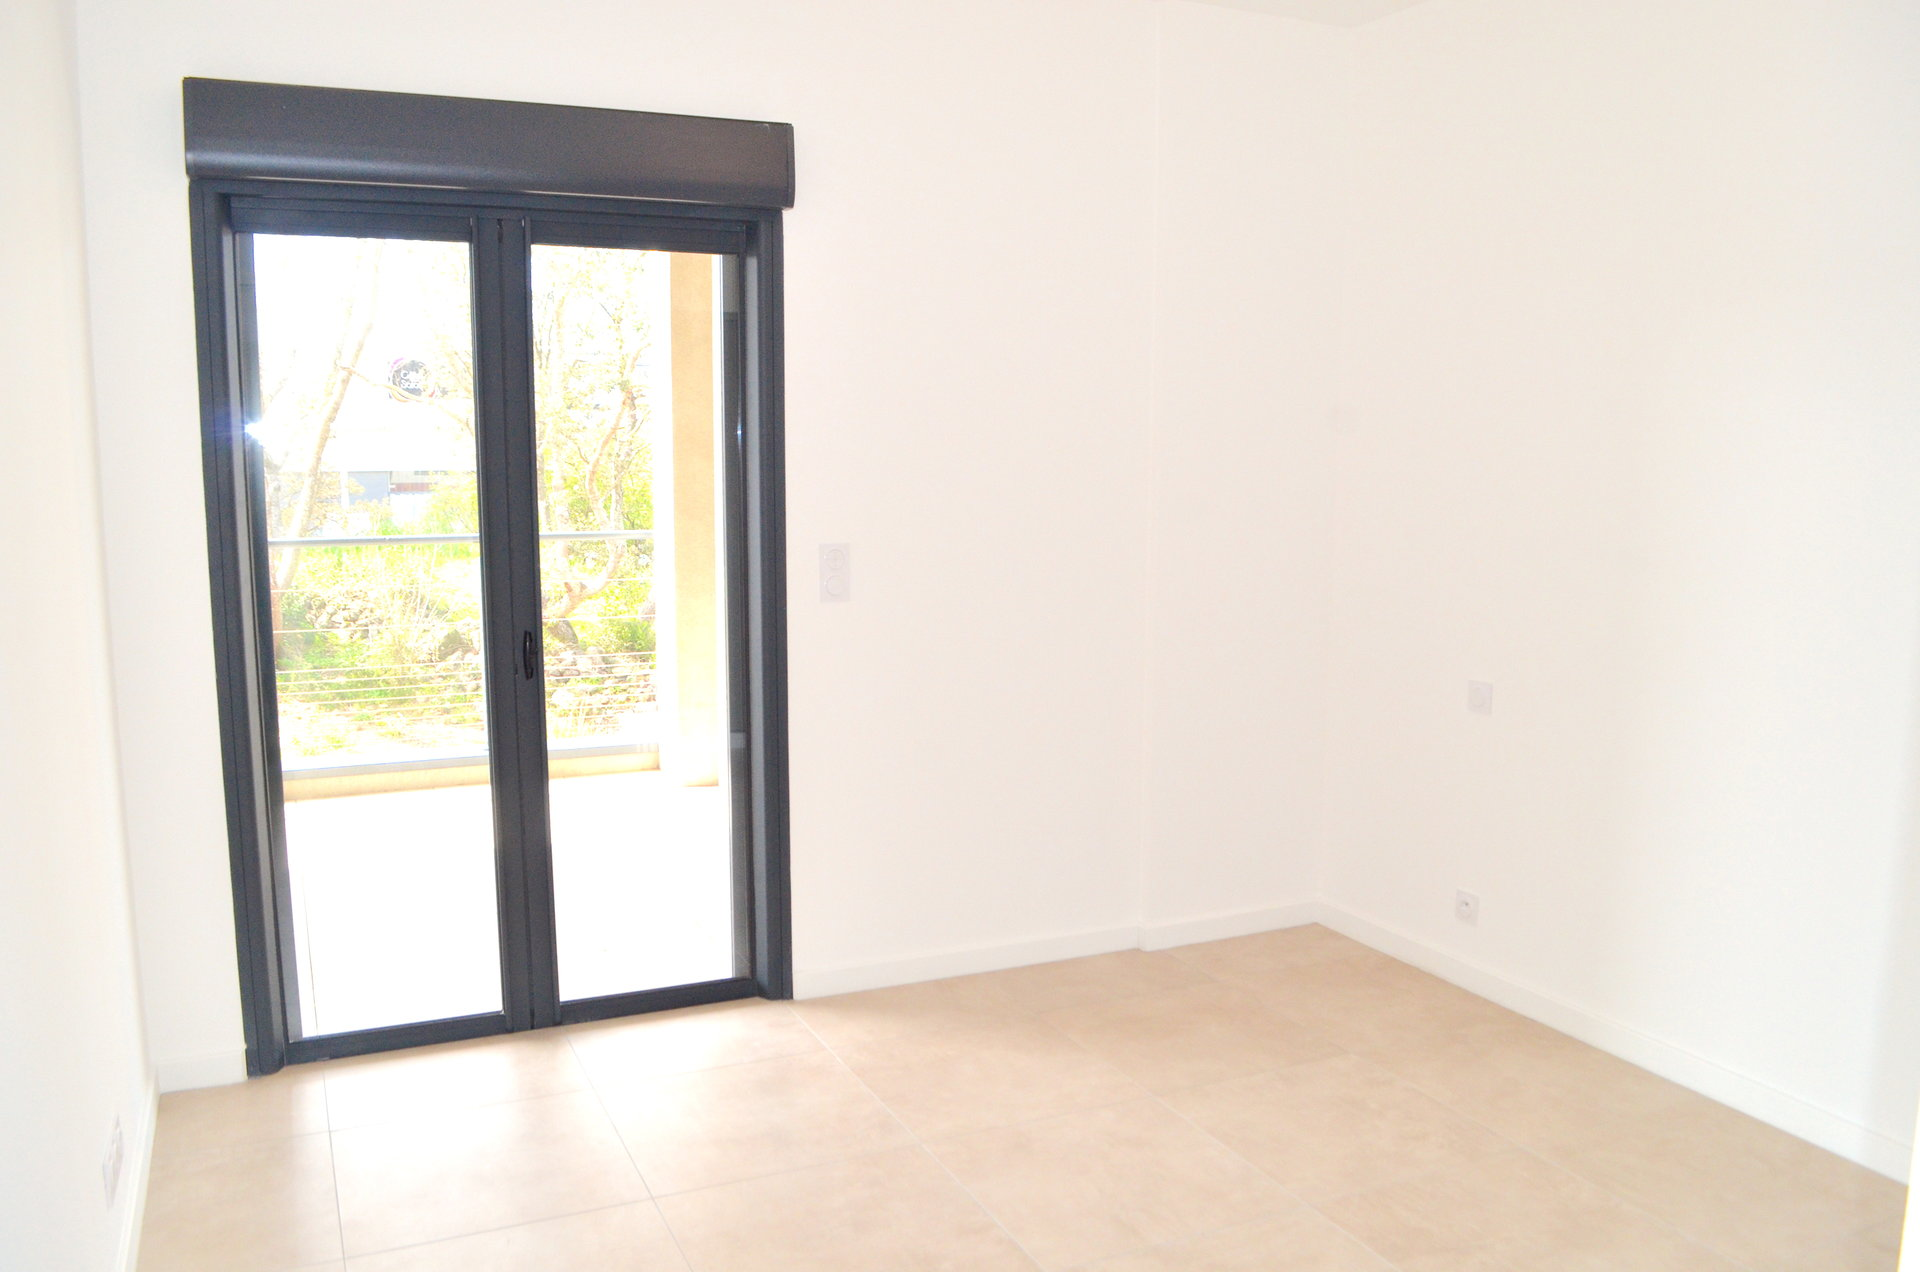 Appartement 3P  95M2 TERRASSE 47M2 Parking sous sol